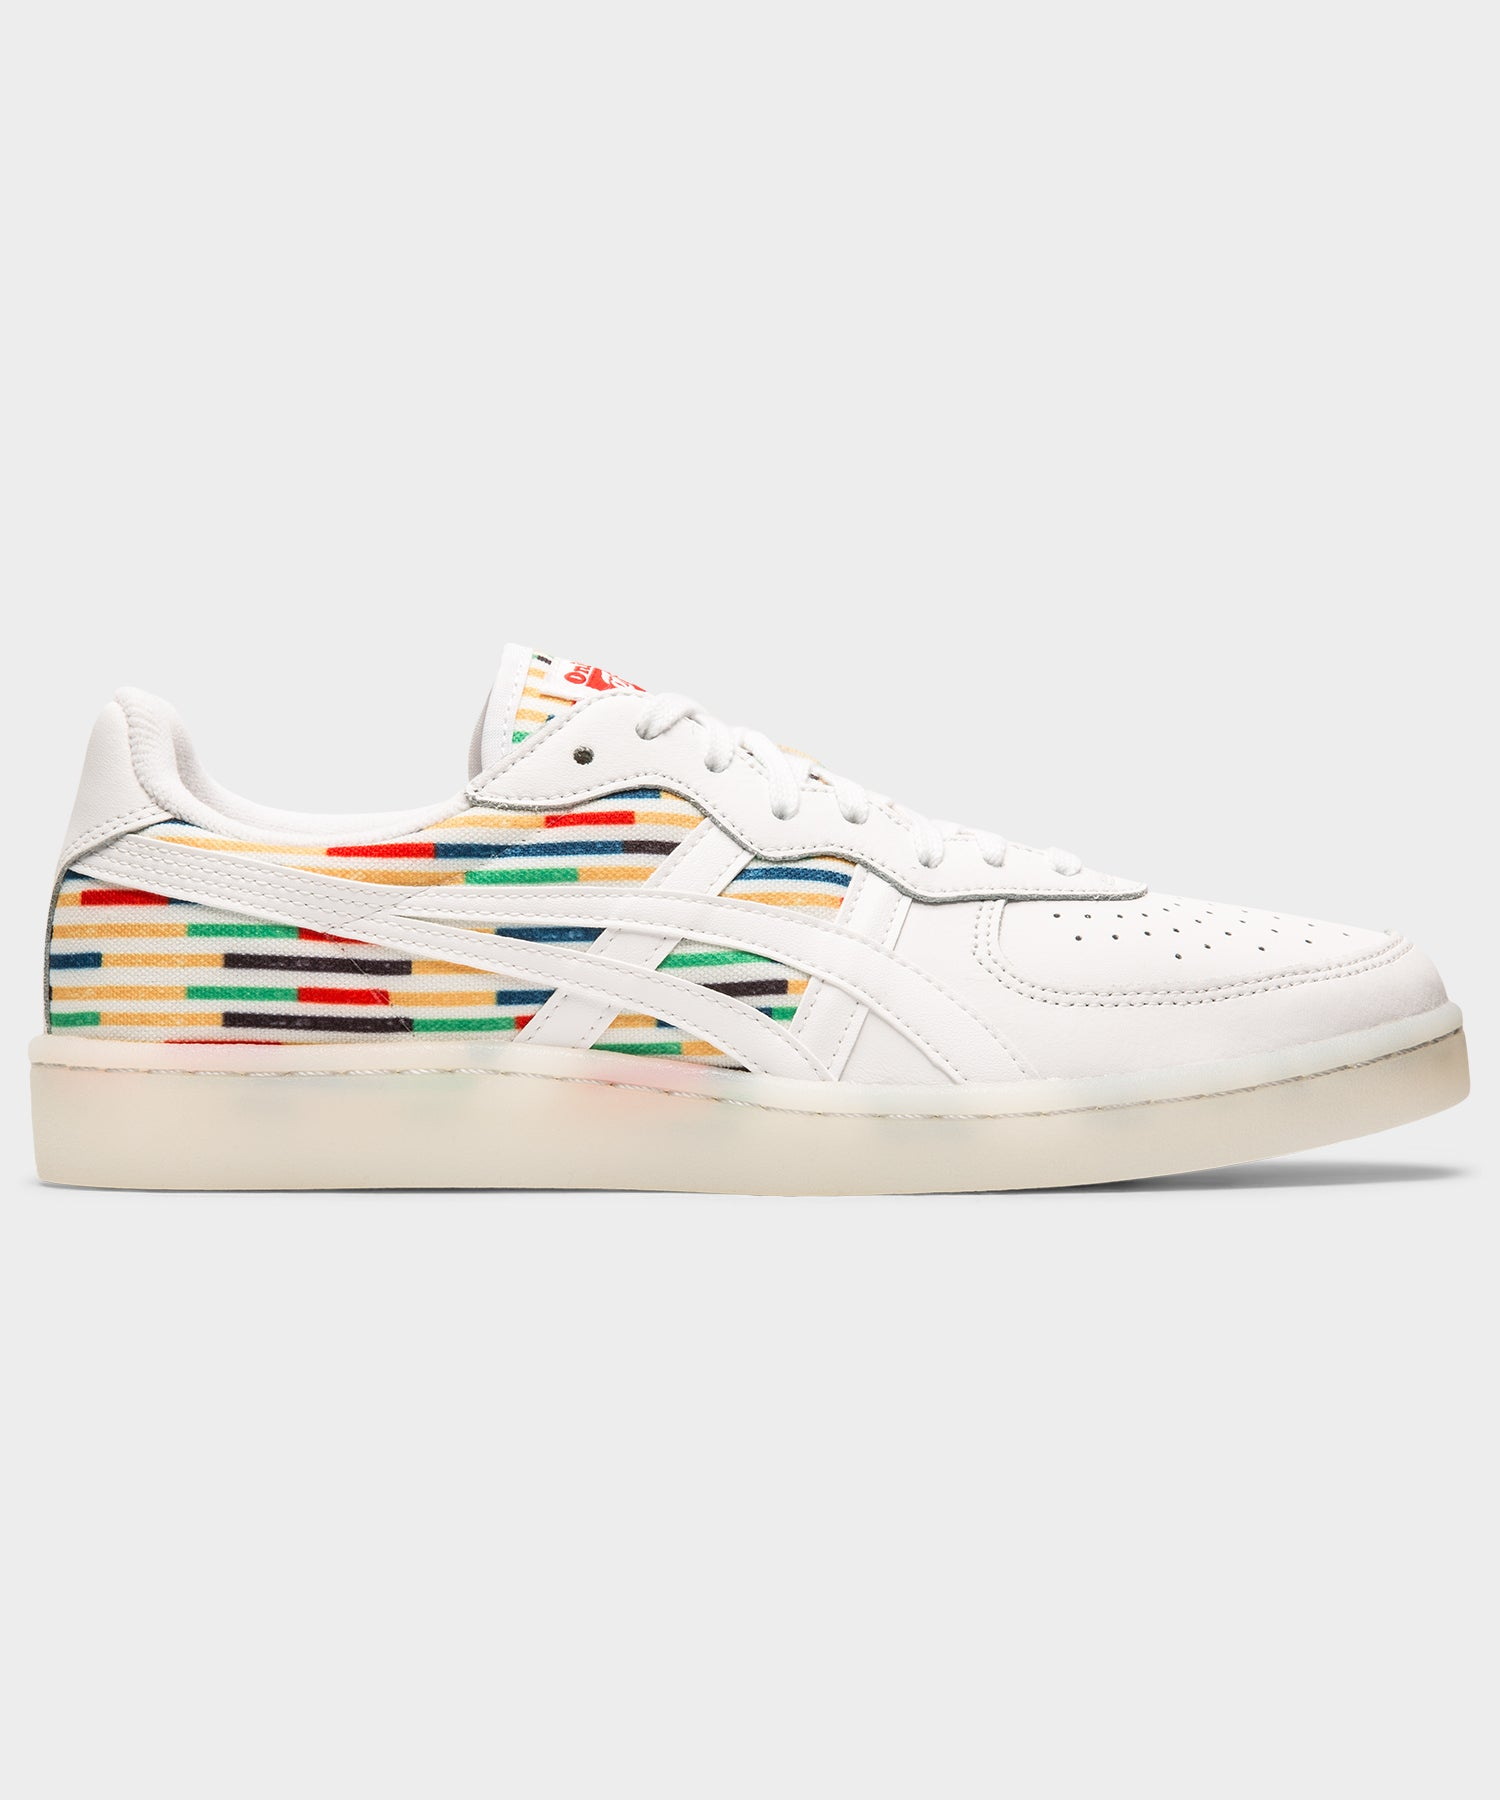 Onitsuka Tiger GSM Graphic Pack in White